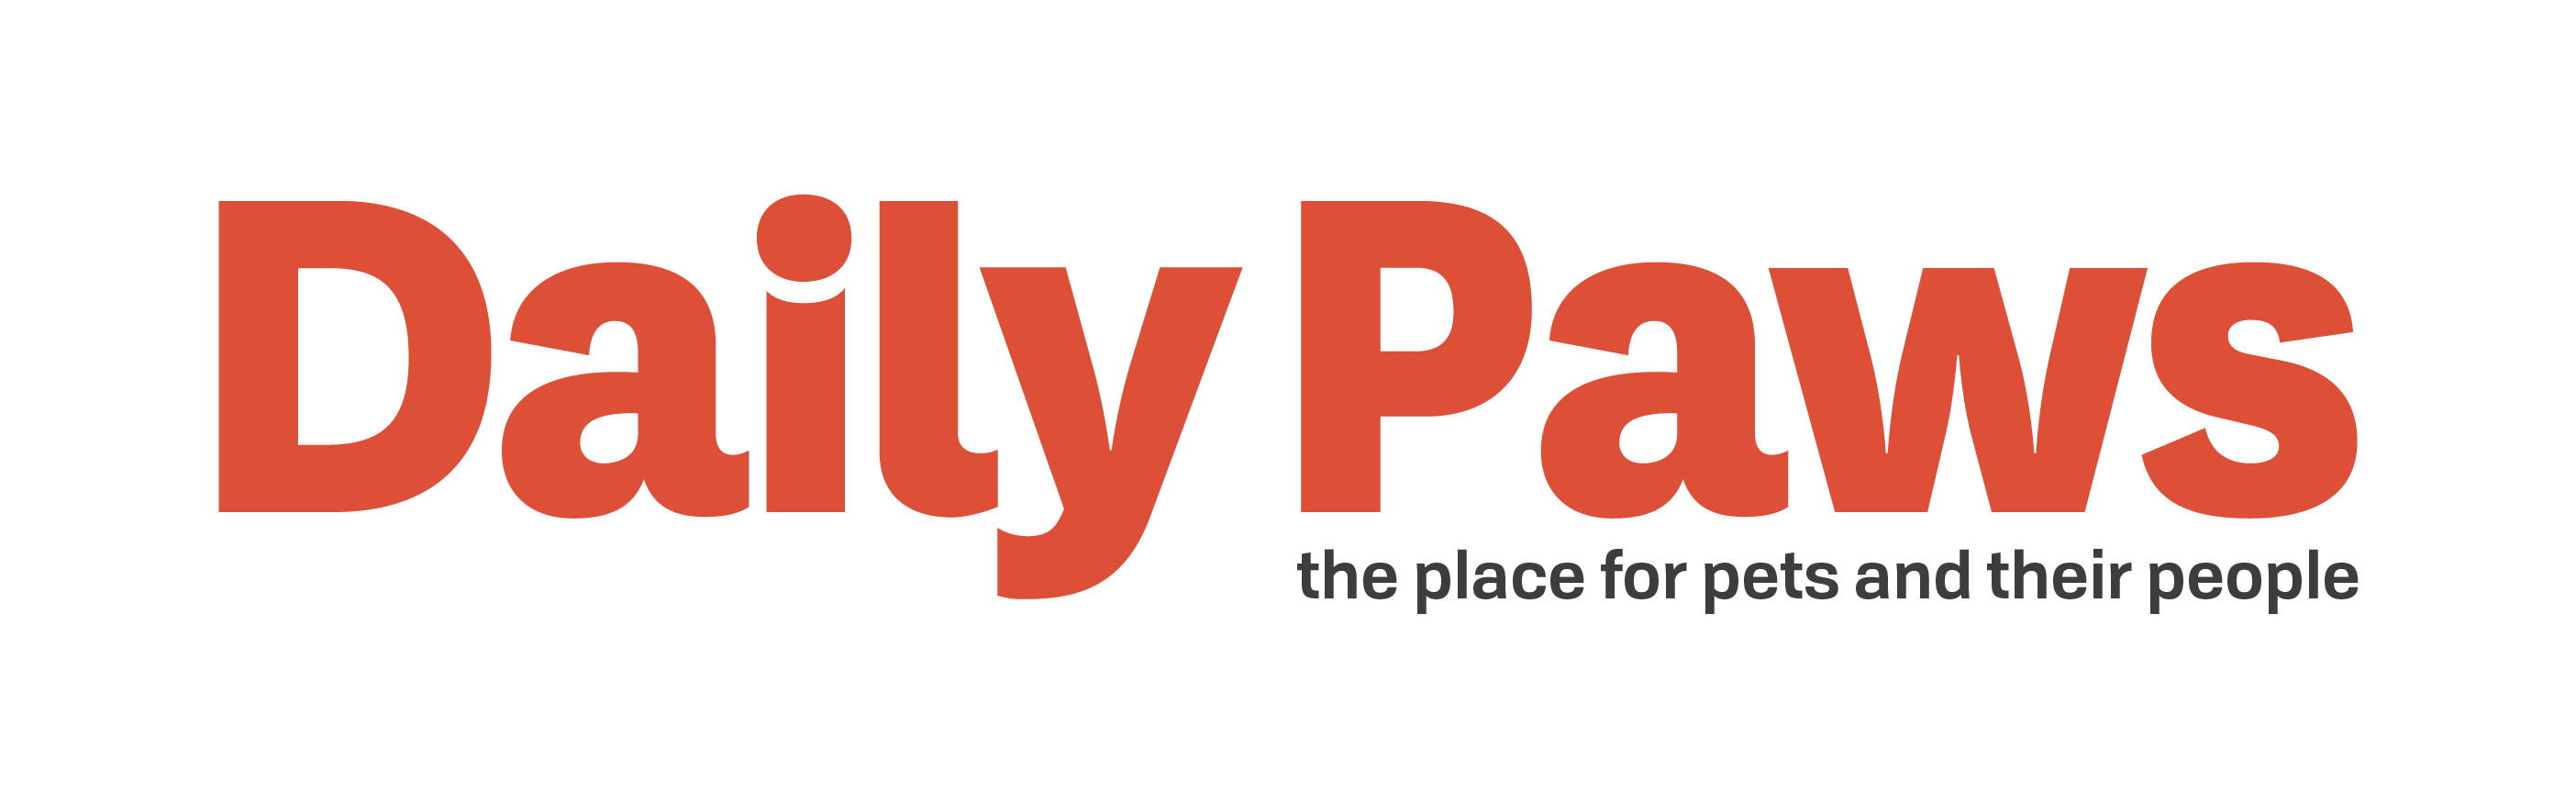 Daily Paws logo and tagline